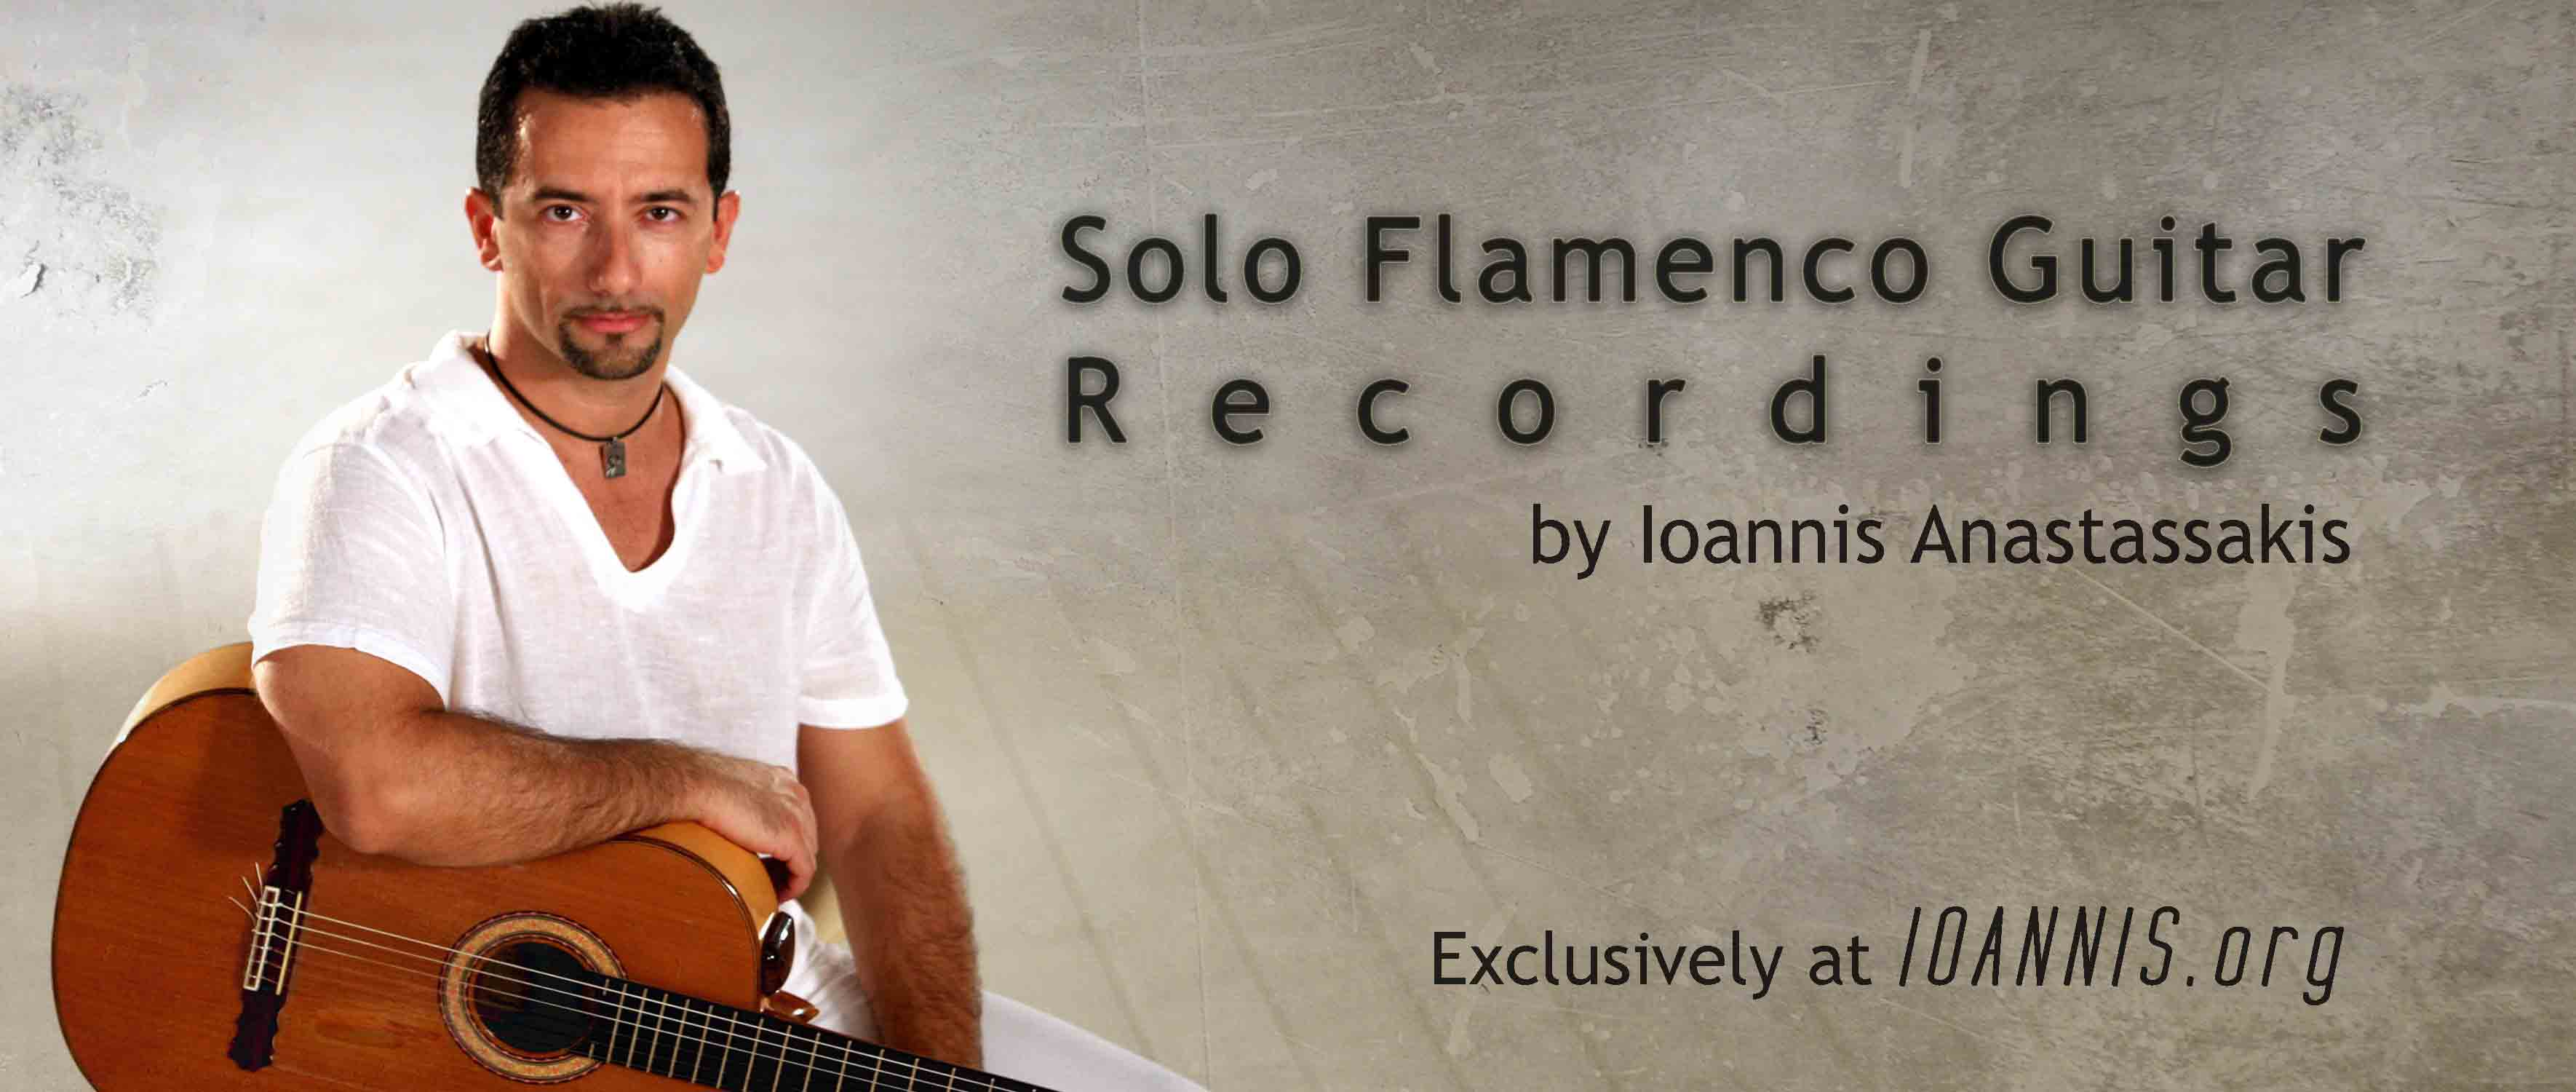 Flamenco Audio